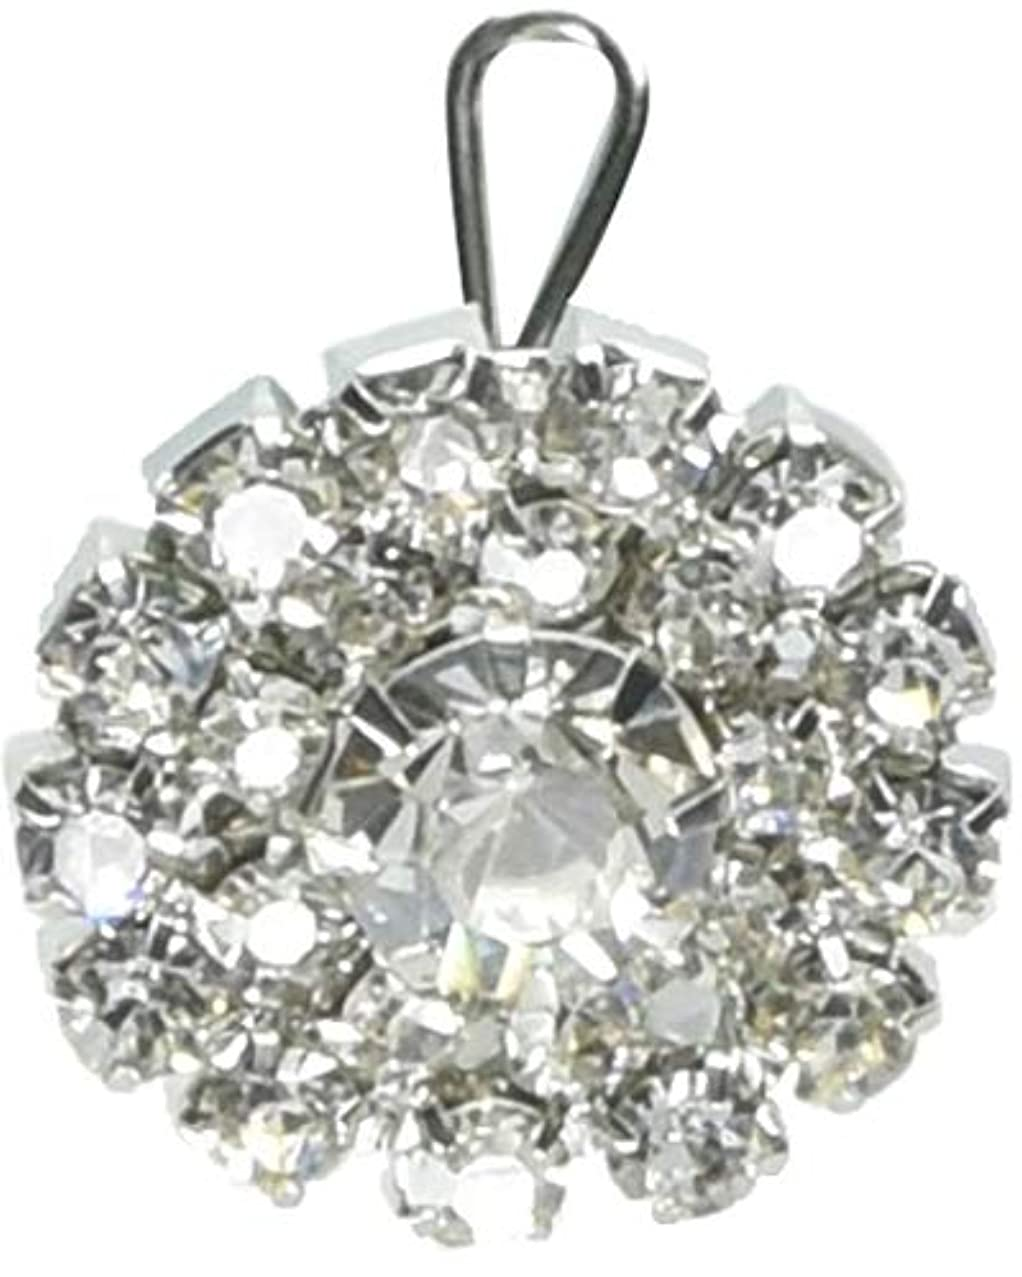 Expo Round Starburst Rhinestone Button BTN1307CR,Crystal